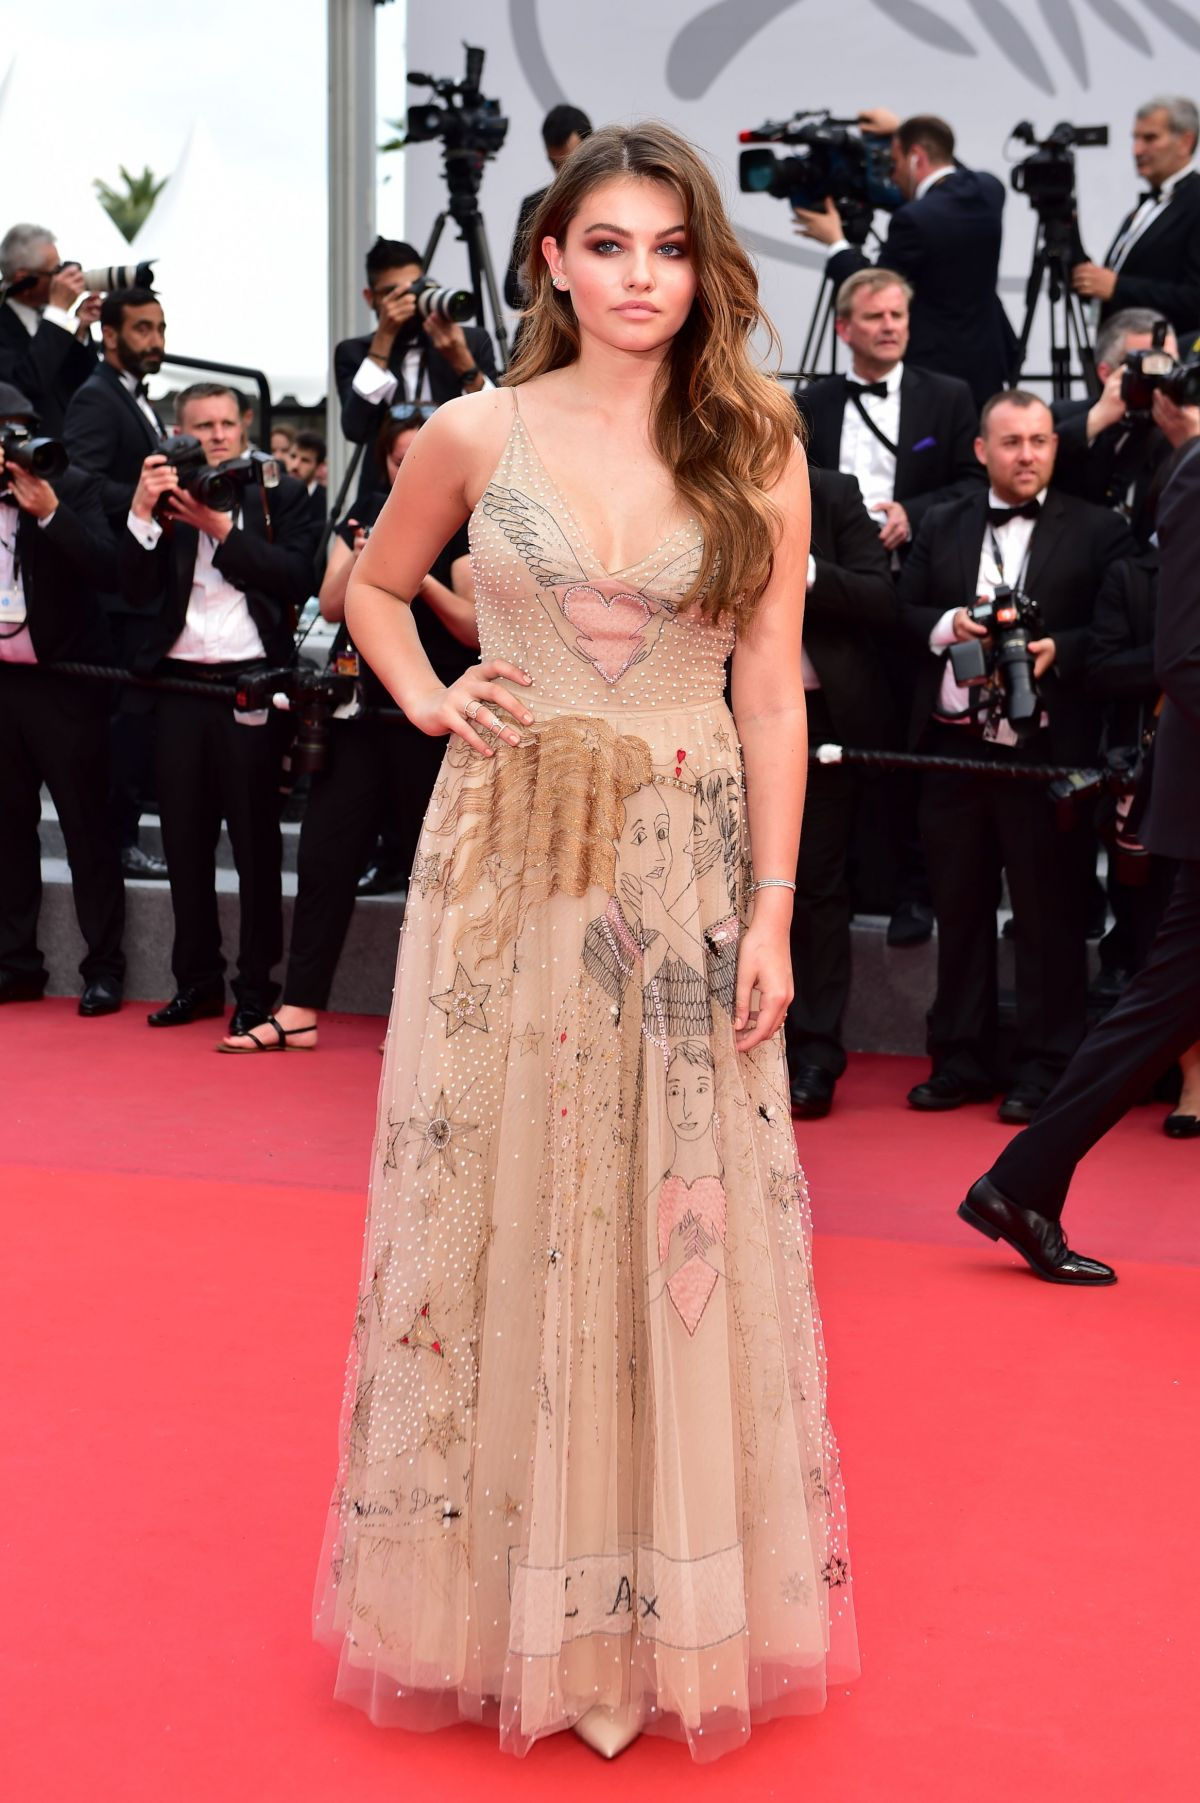 Cannes 2017 Heidi Klum Continues A Cannes Tradition In: THYLANE BLONDEAU At Loveless Premiere At 2017 Cannes Film